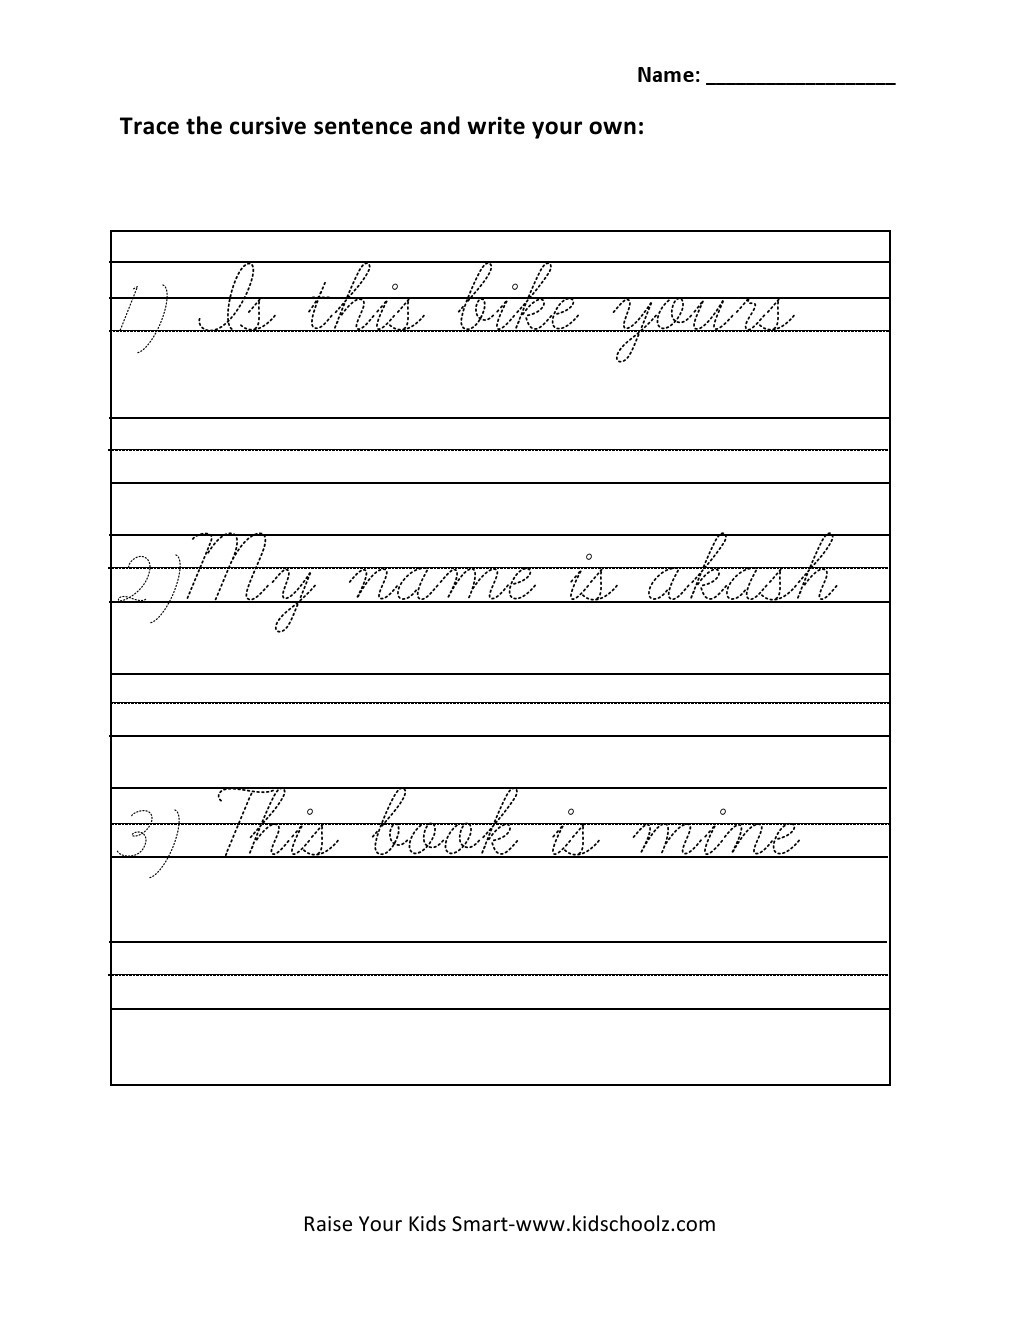 Cursive Sentences Worksheets Printable Math Worksheet Fantastic Cursive Writing Printable